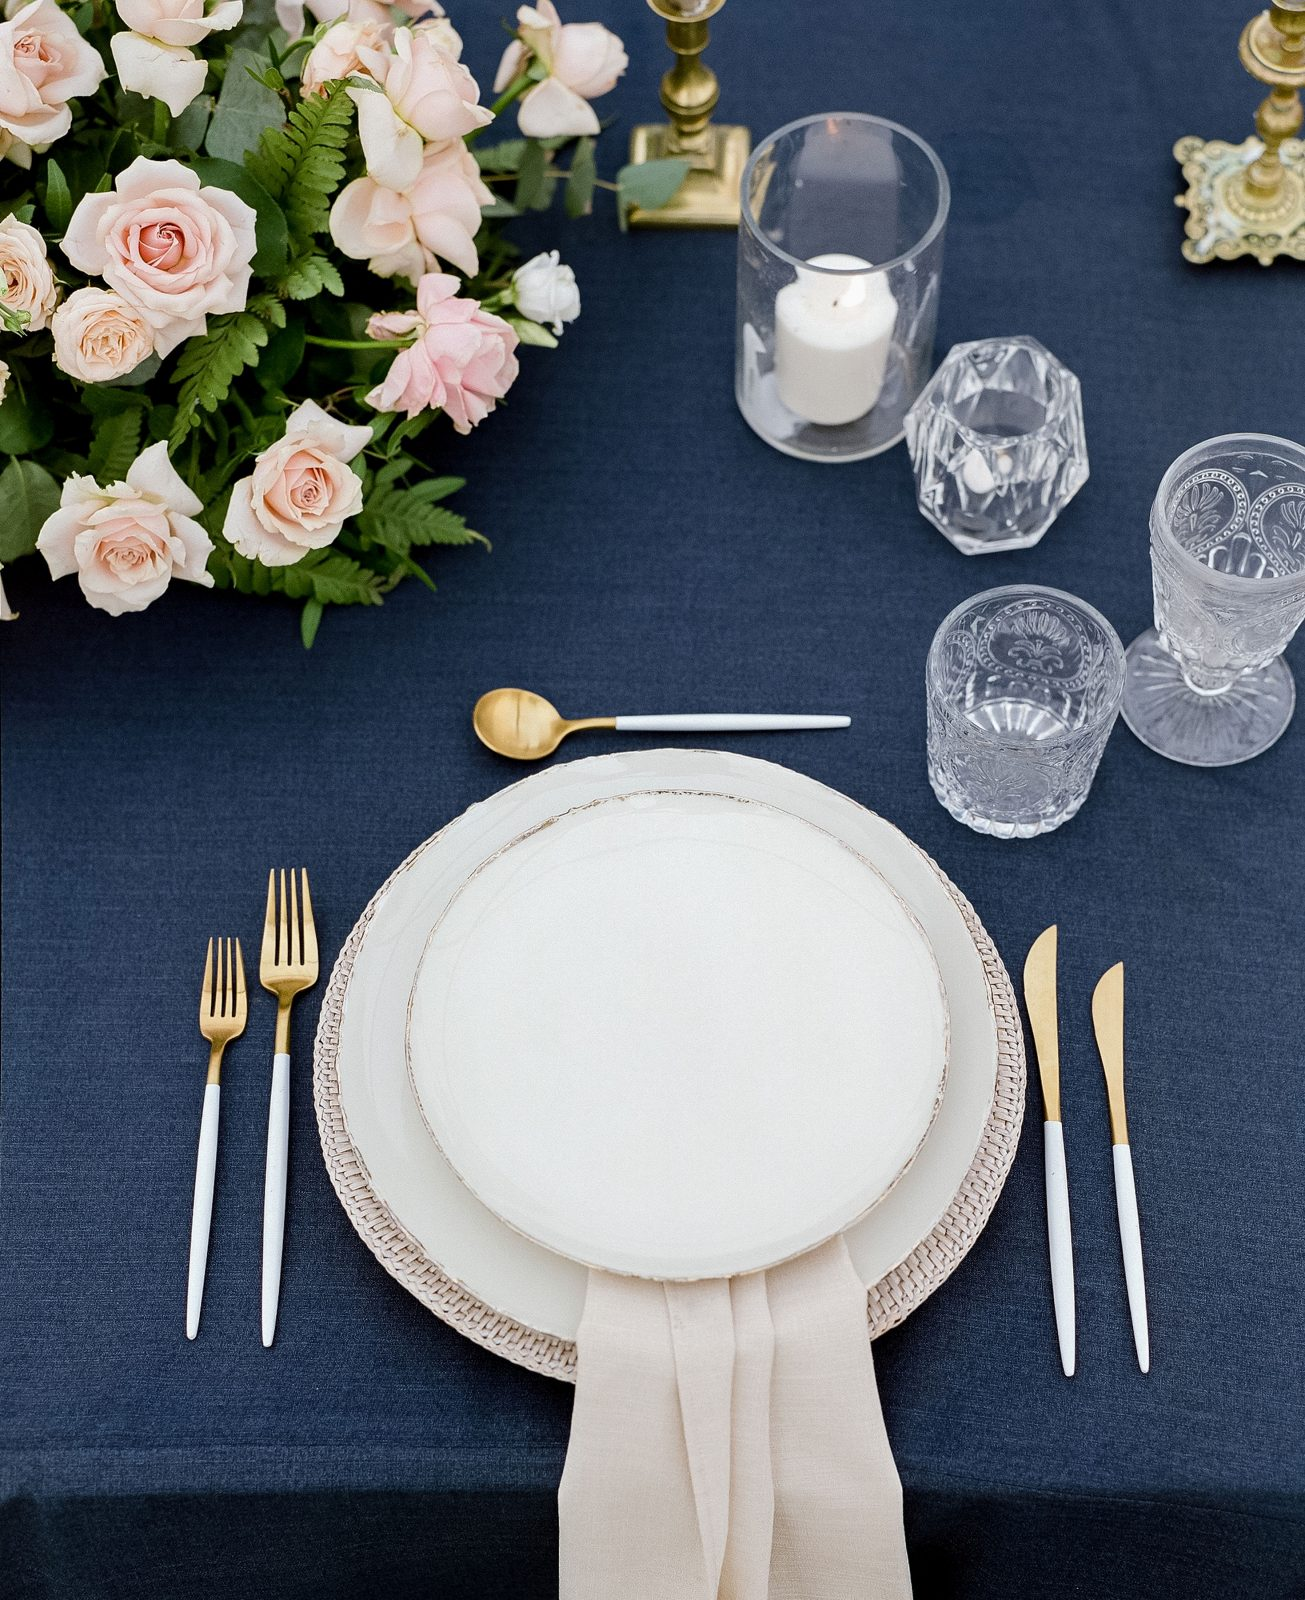 Tableware inspiration for wedding set up